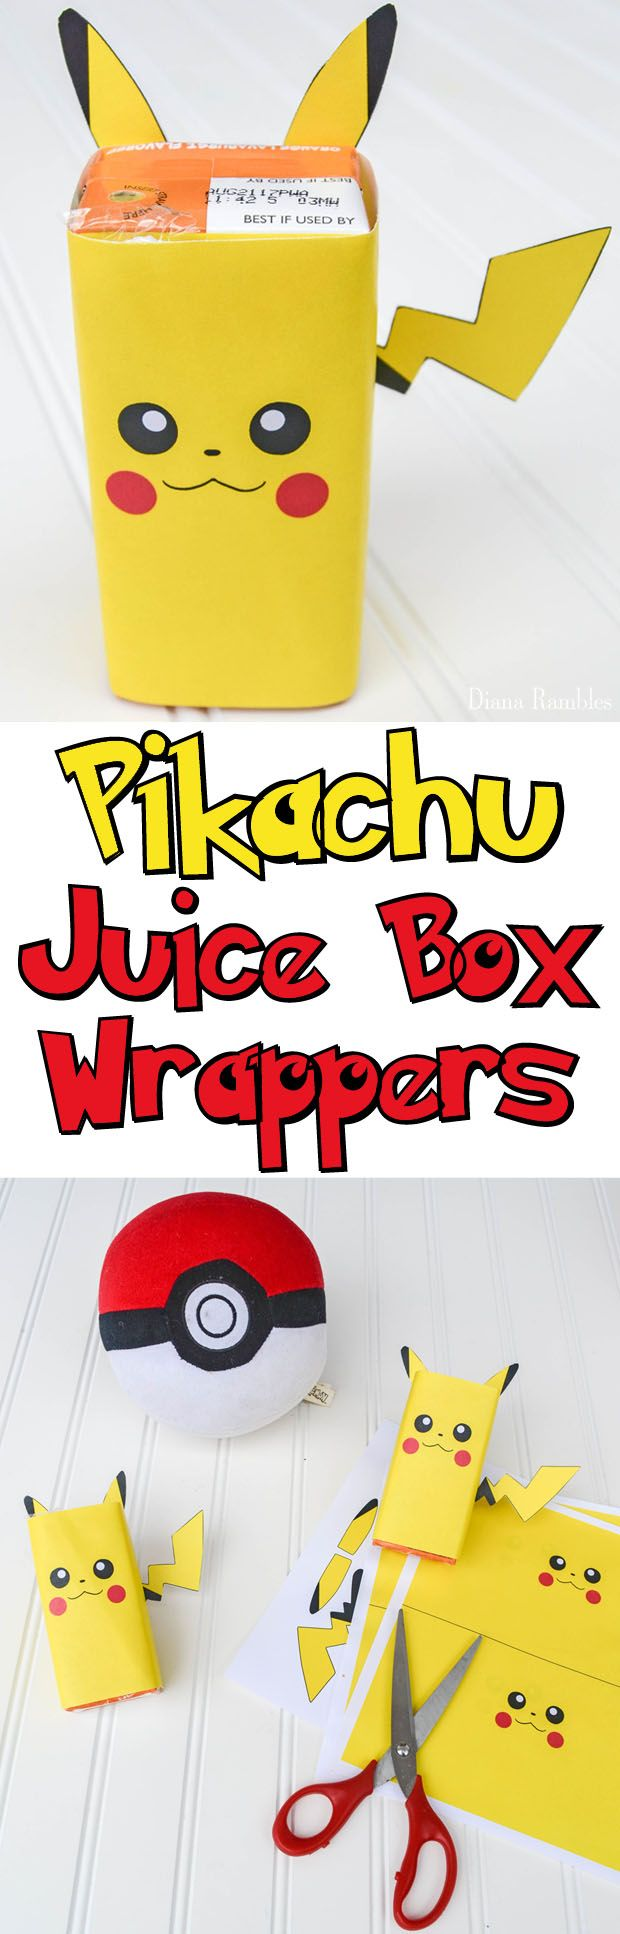 Download these free Pikachu Juice Box Wrappers for the Pokémon lover in your house. These Pokemon covers for juice boxes are perfect for lunch boxes or parties. #Pokemon #Pikachu #freeprintable